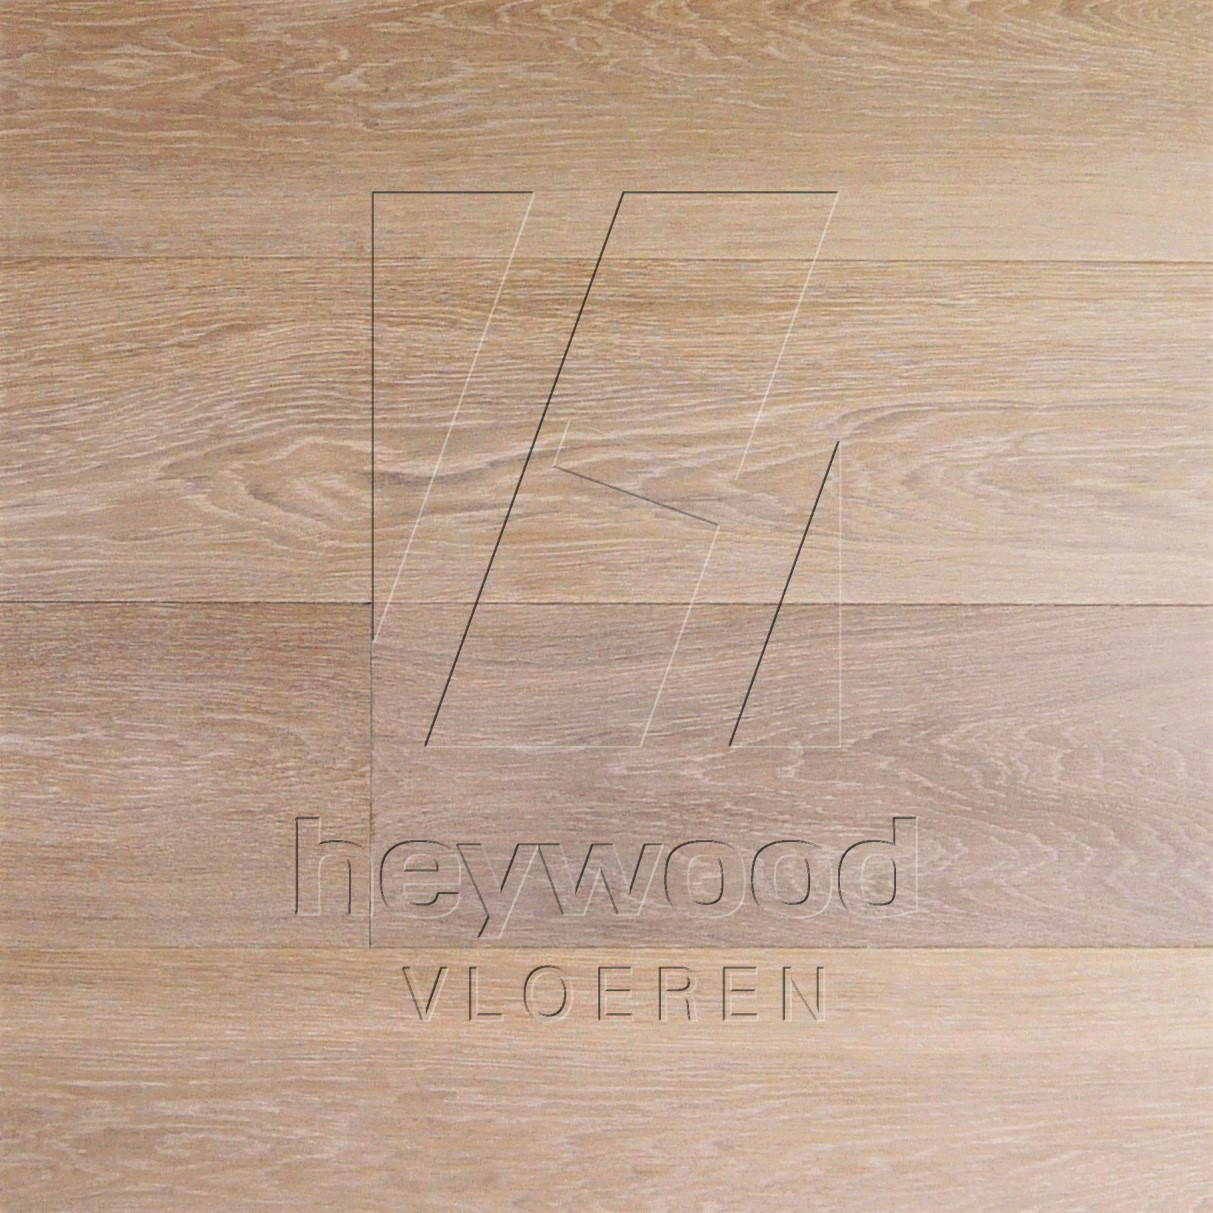 Plank Nile in European Oak Elegance of Bespoke Wooden Floors